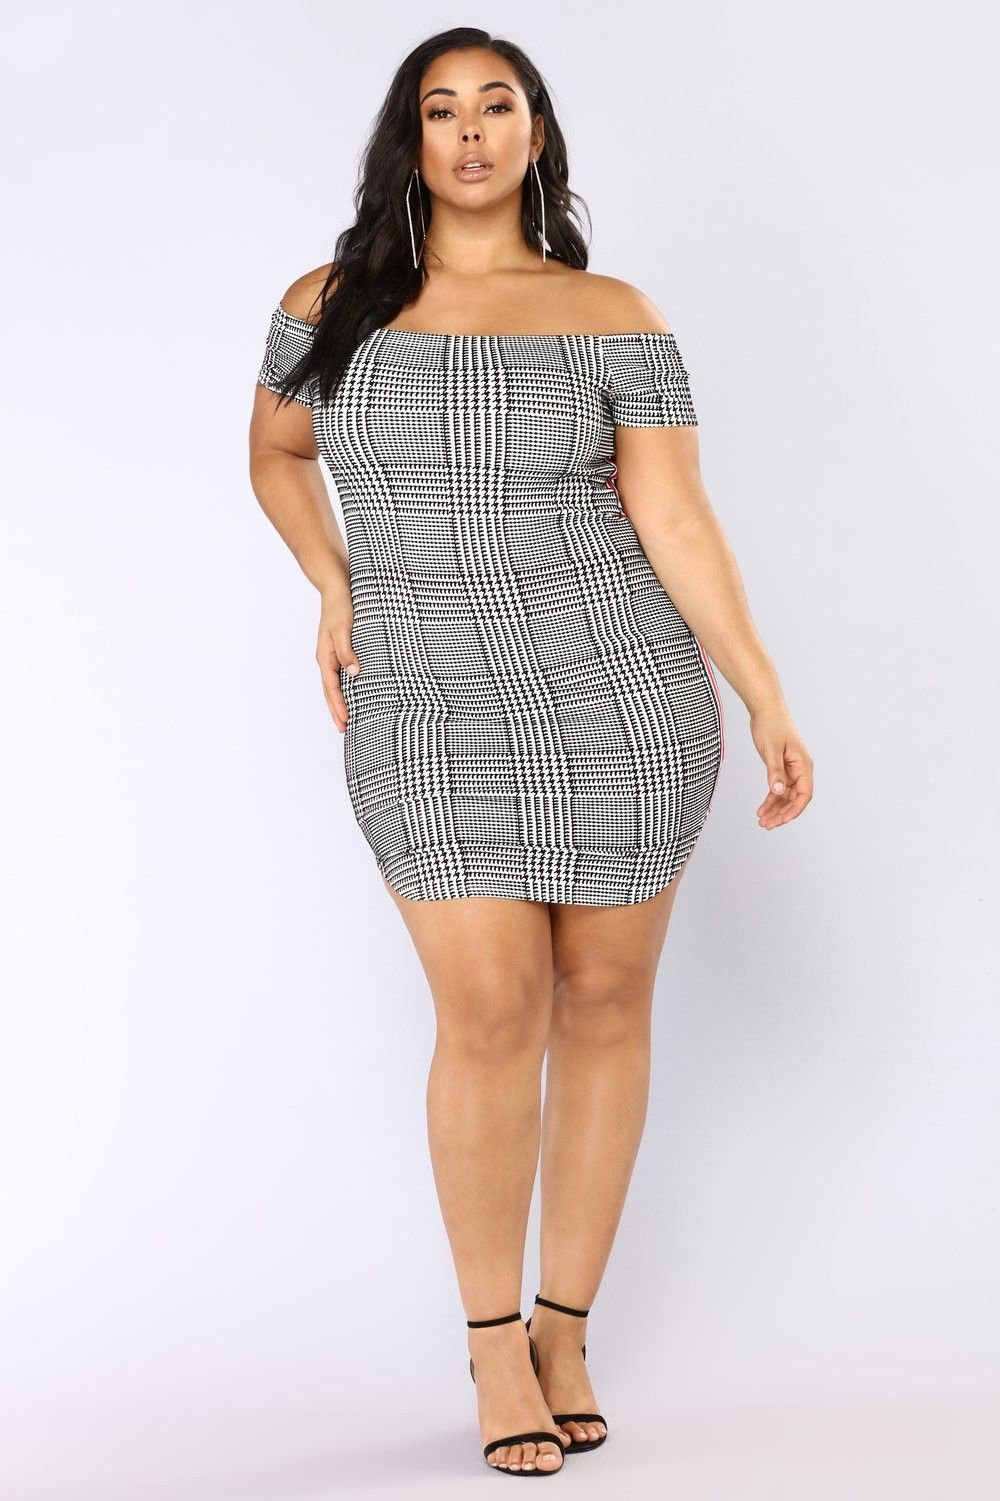 5c7ff037ff4 Plus Size Race You There Houndstooth Dress - Black White  24.99  fashion   ootd